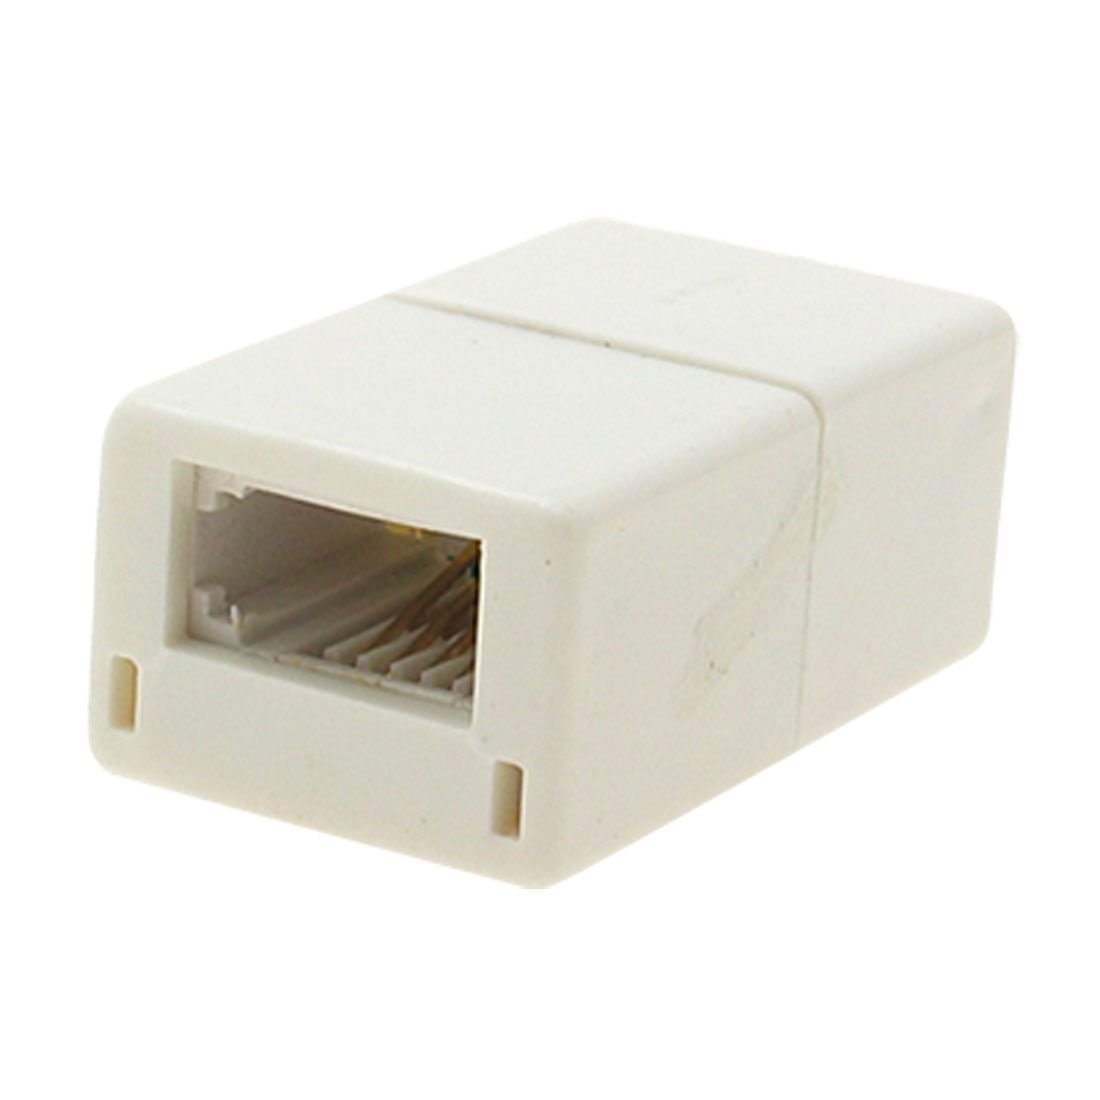 Telephone Modem Phone 4P4C Female RJ11 Splitter Adapter